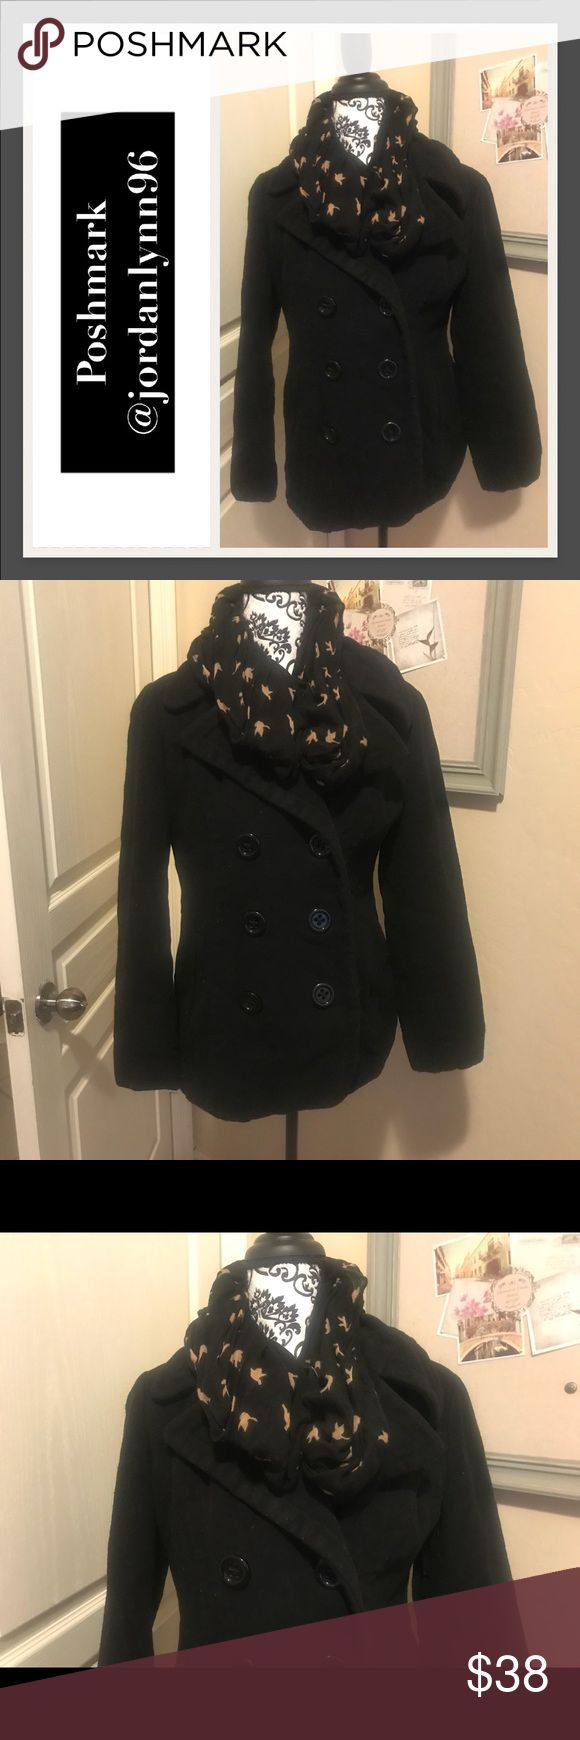 STYLE & CO Black Pea Coat Style &Co Black Pea Coat. Very comfortable and cozy. This jacket is very thick and will certainly keep you warm. Very good used condition. No major flaws. 80% Wool, 20% Nylon, Lining is 100% Polyester. Size S (comfortably fits up to size 8). 🍁Pair it with this lovely scarf available in the add on section and receive a bundle discount!🍂 Style & Co Jackets & Coats Pea Coats